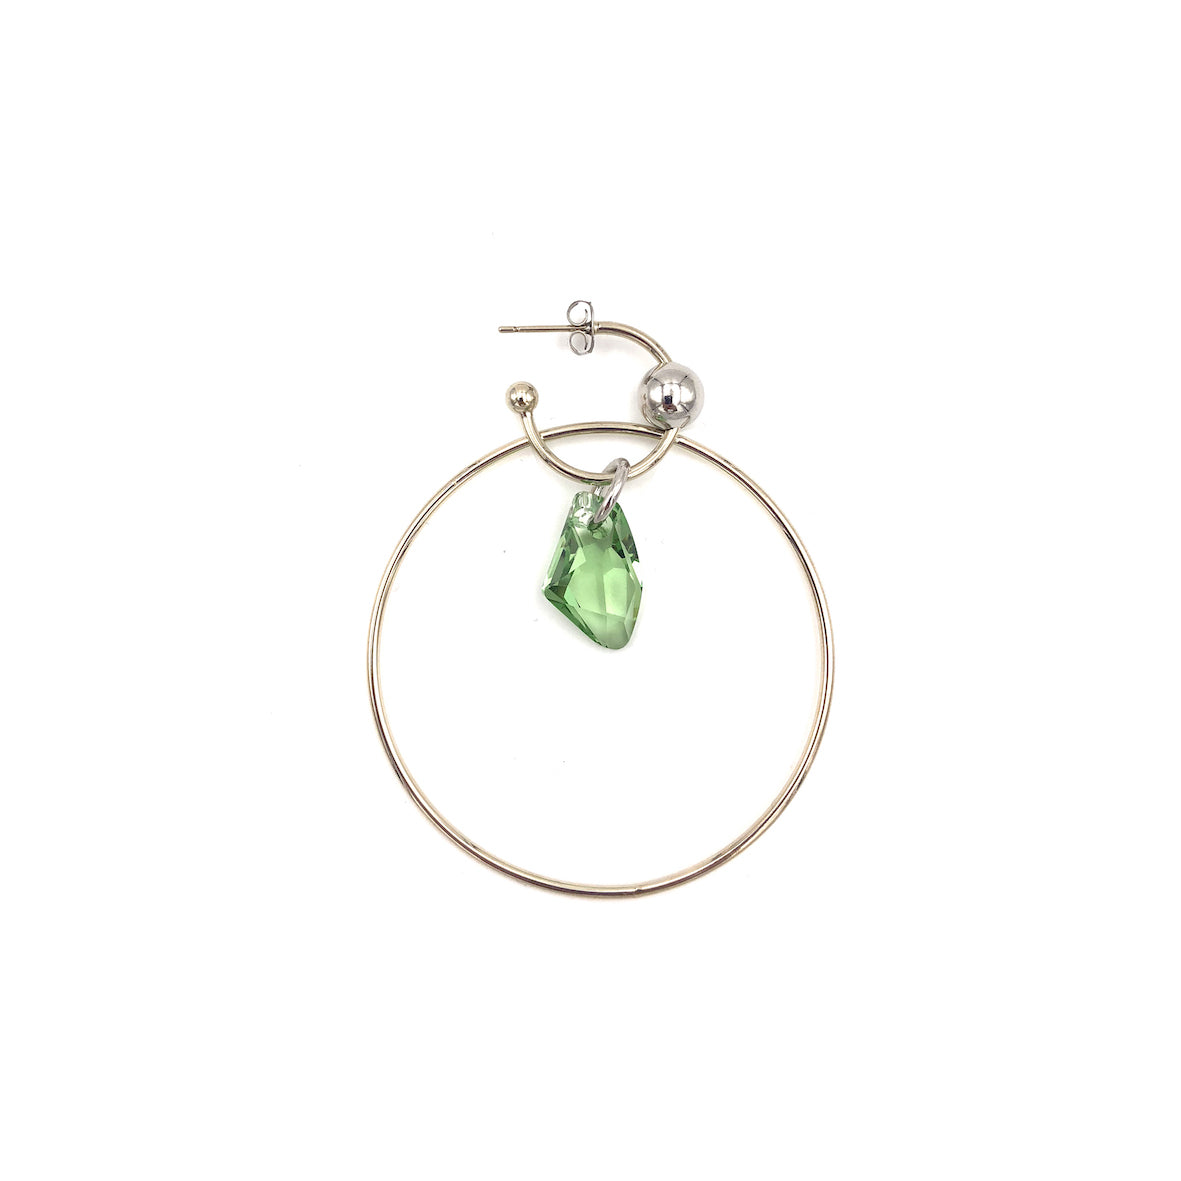 Ariane single earring